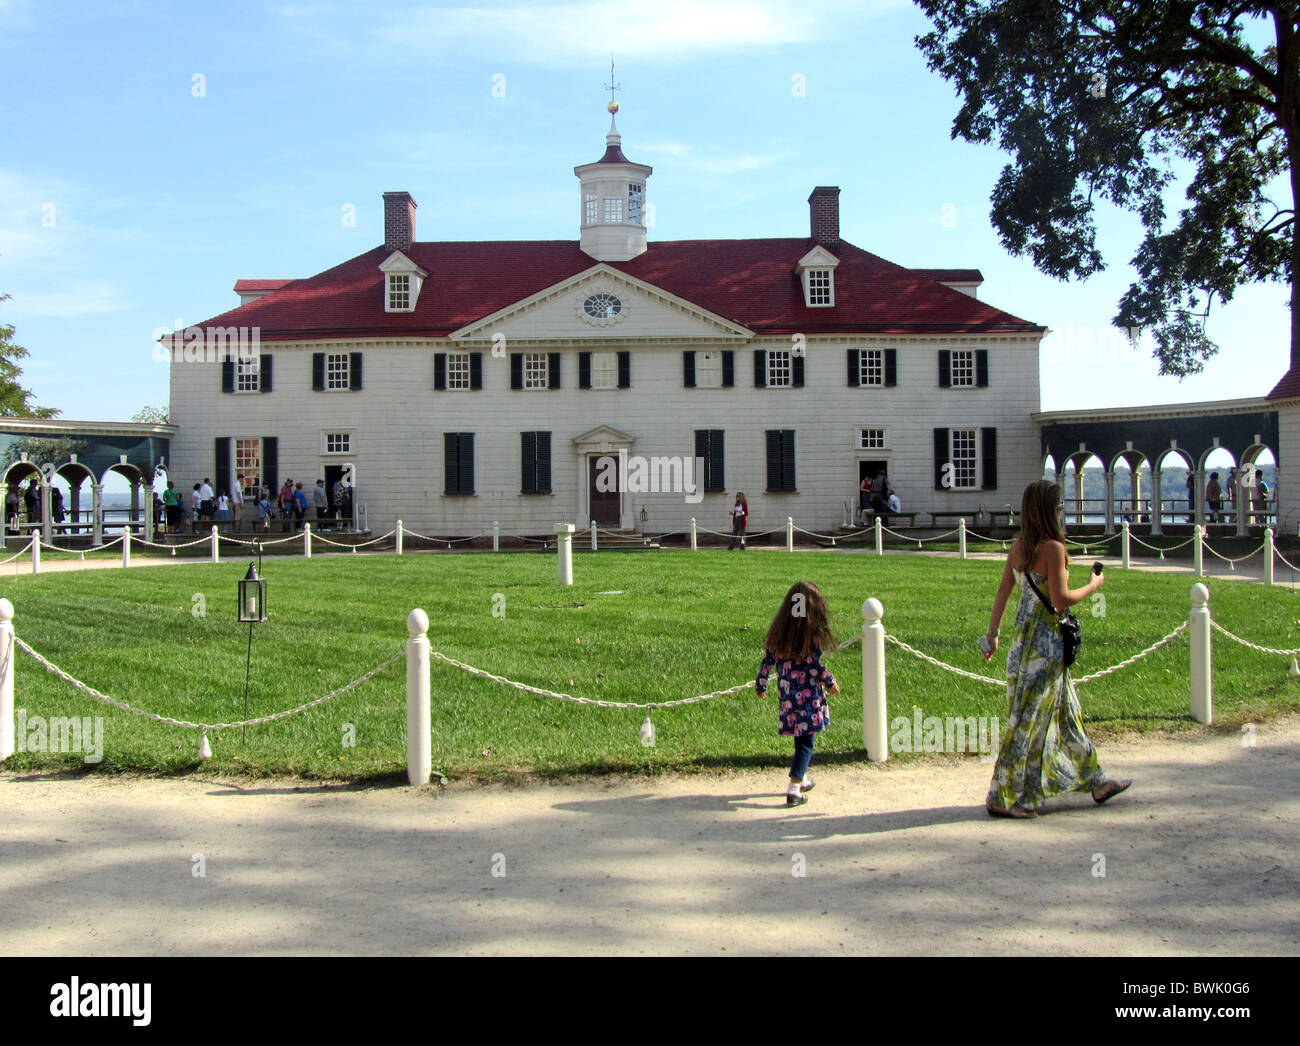 Mount Vernon, the plantation home of George Washington, first President of the United States, Virginia, America - Stock Image